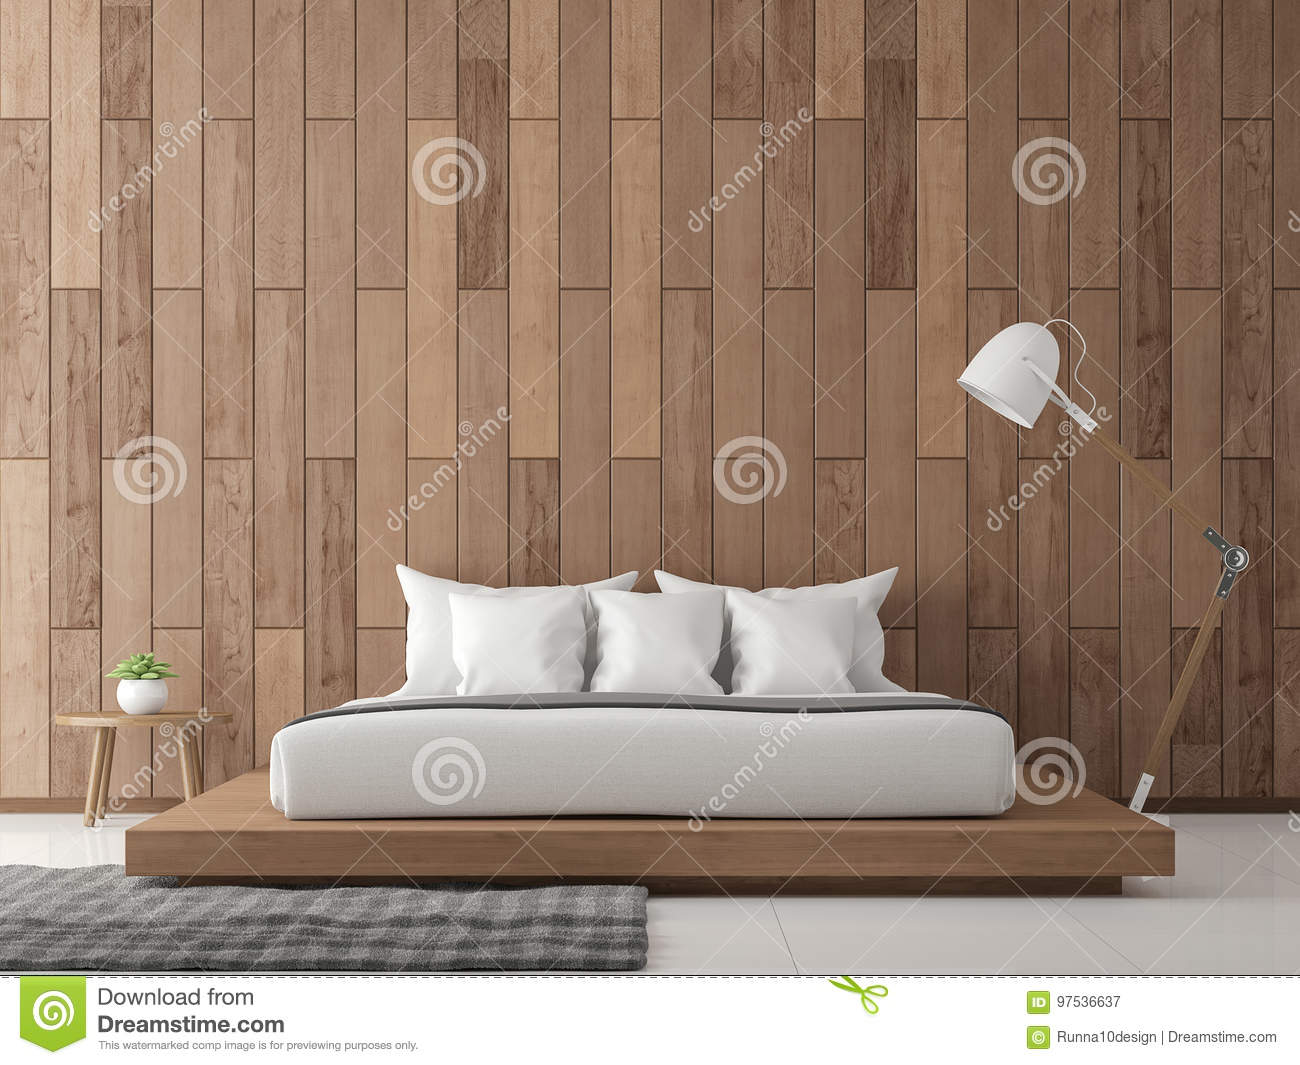 Modern contemporary bedroom interior d rendering image stock